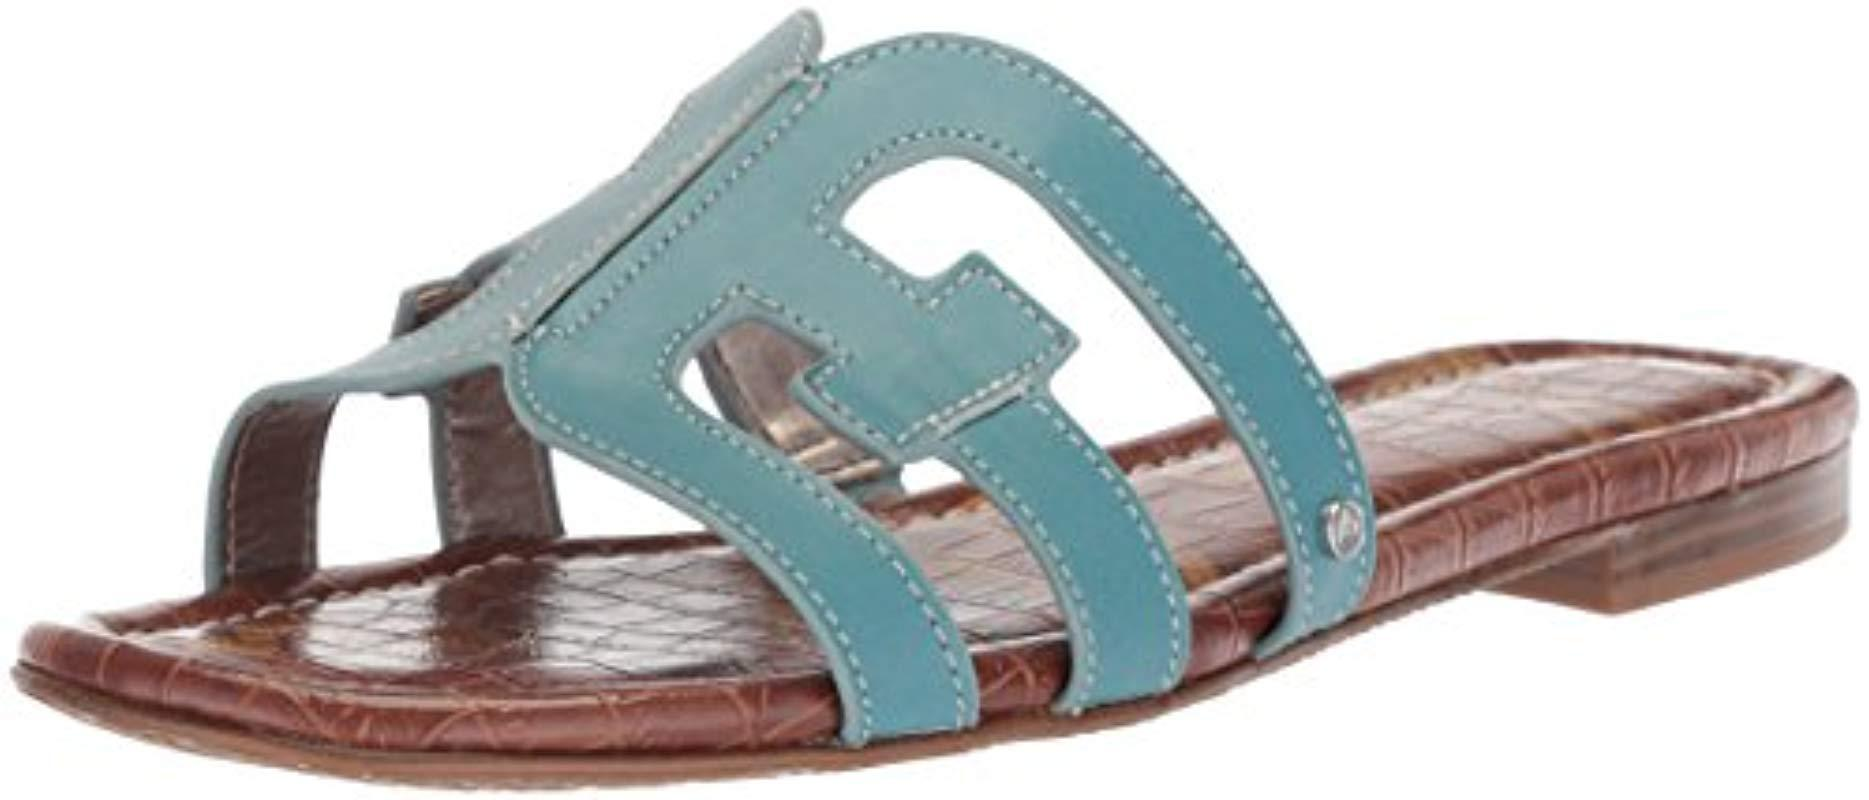 c72e7084c6 Sam Edelman Bay Slide Sandal in Blue - Save 55% - Lyst